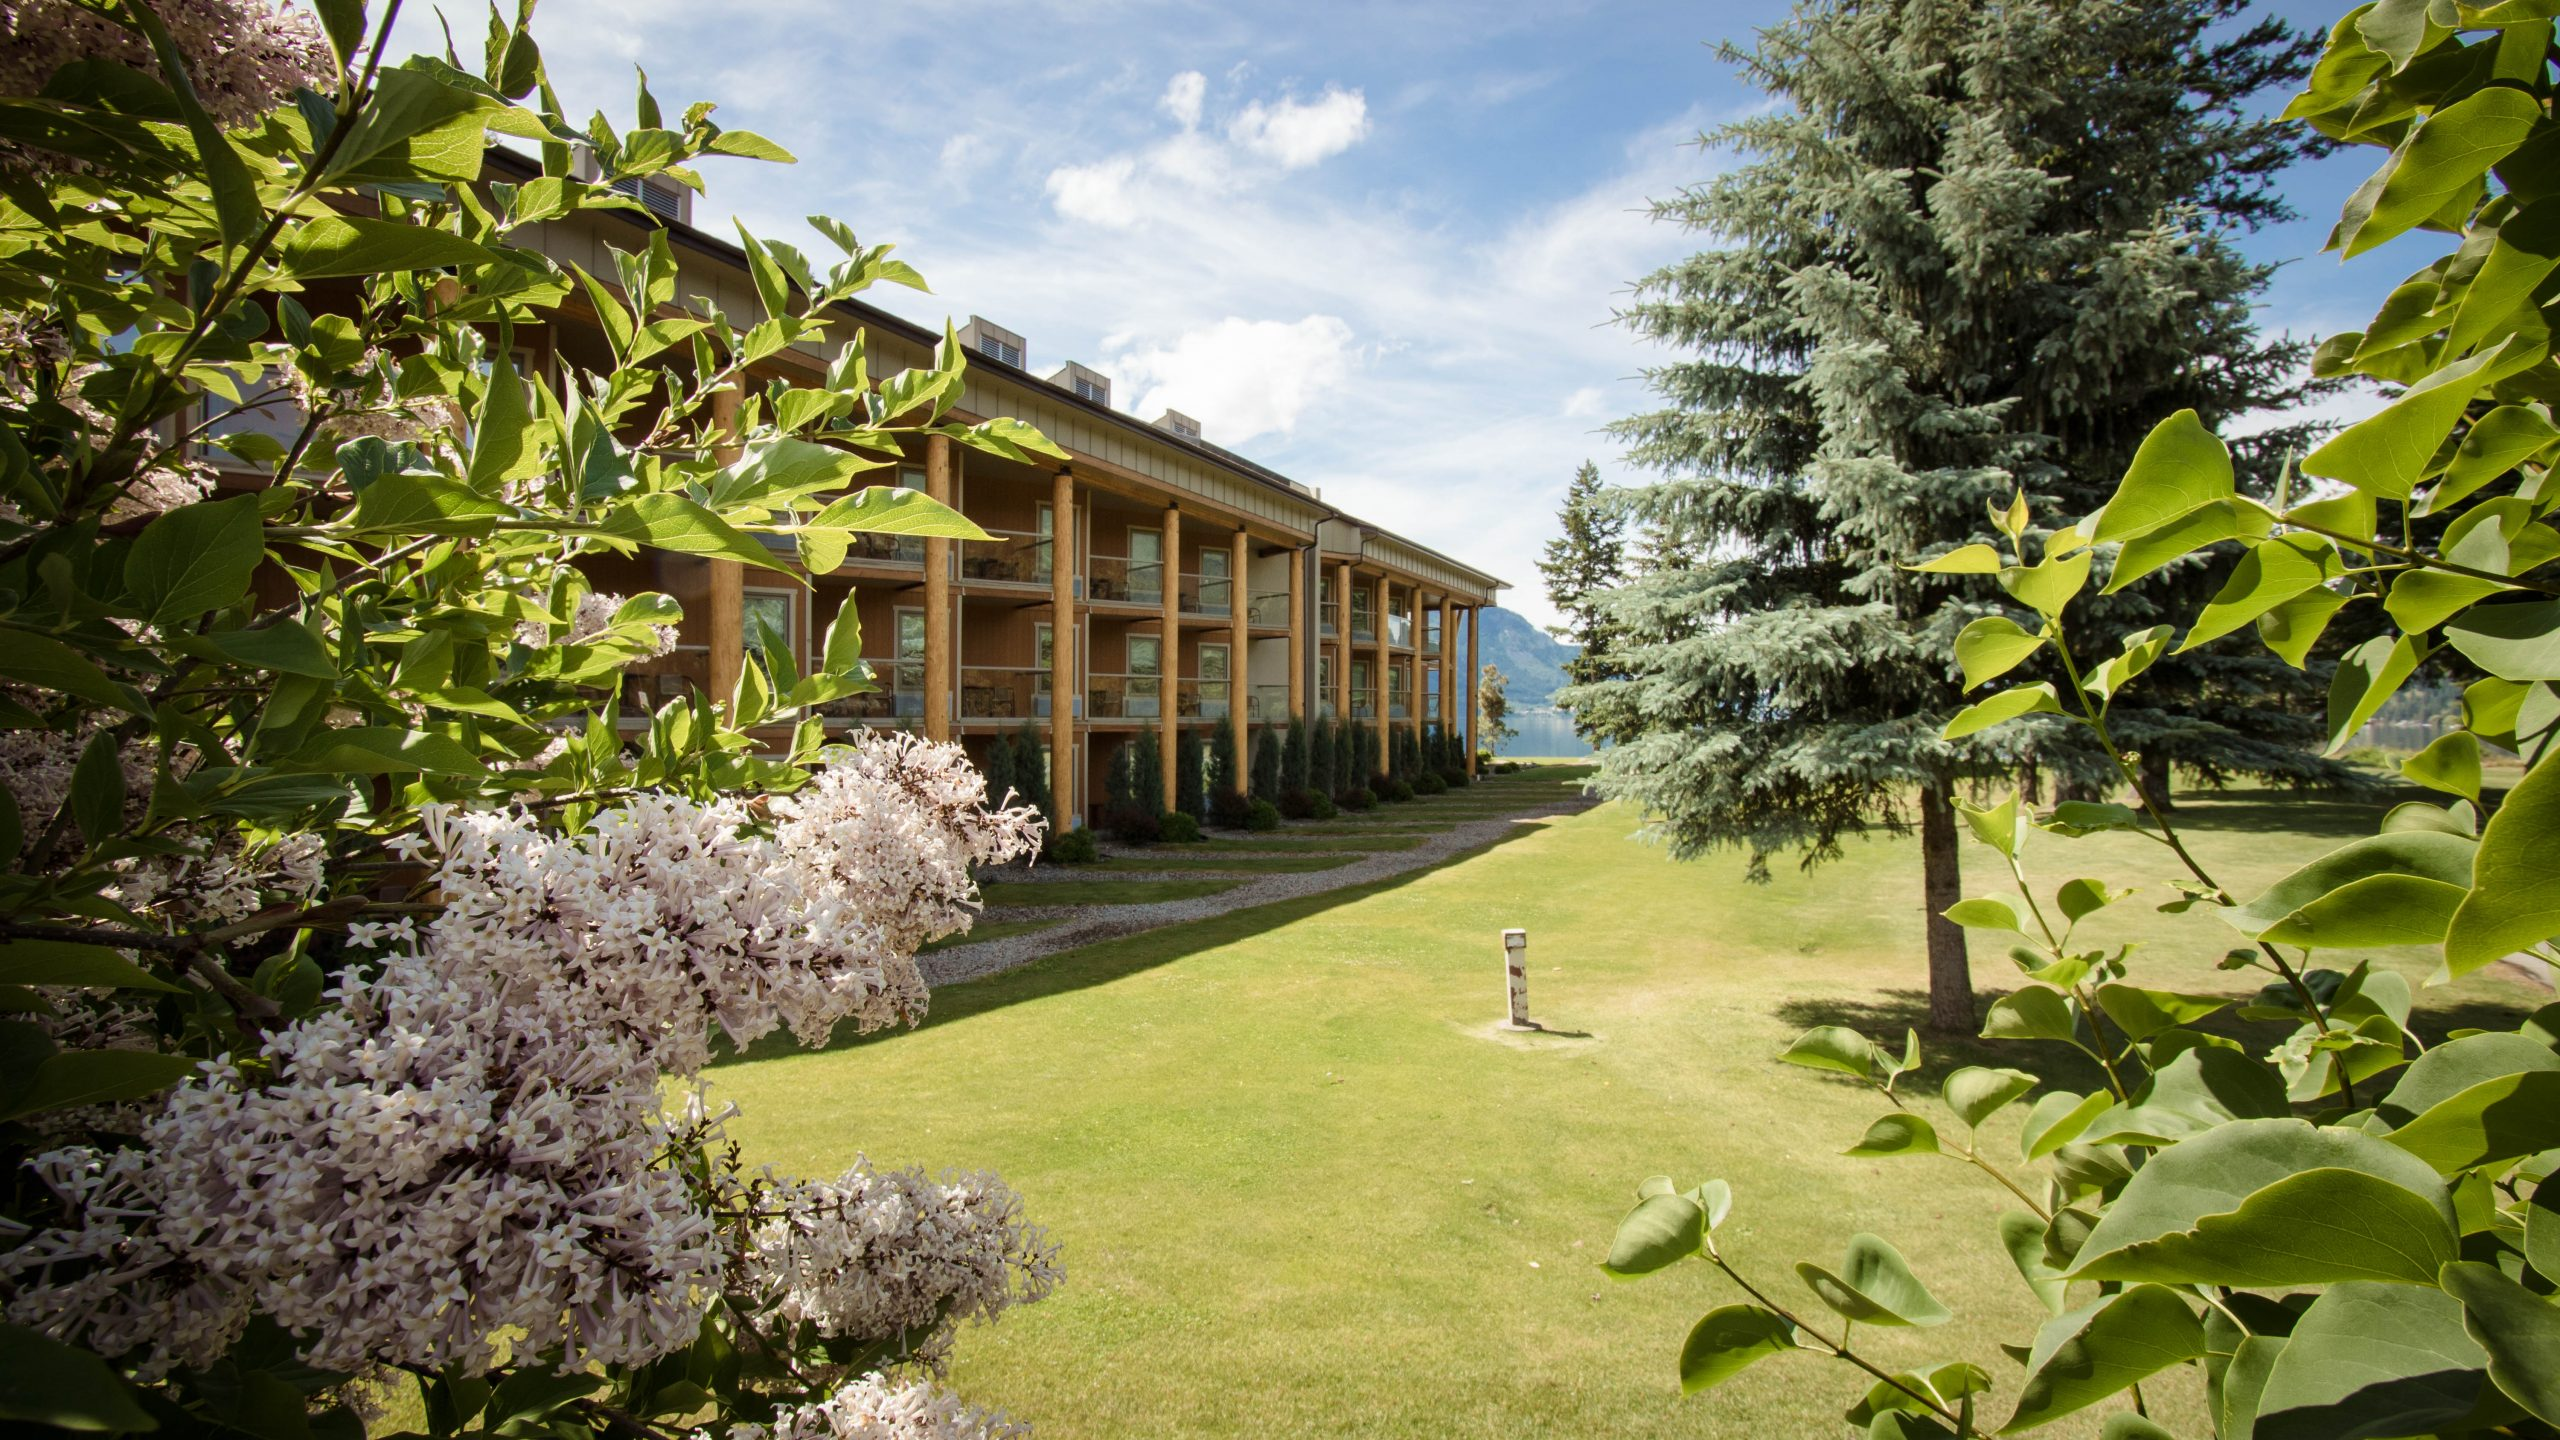 Quaaout Lodge Resort and Spa, Little Shuswap Lake